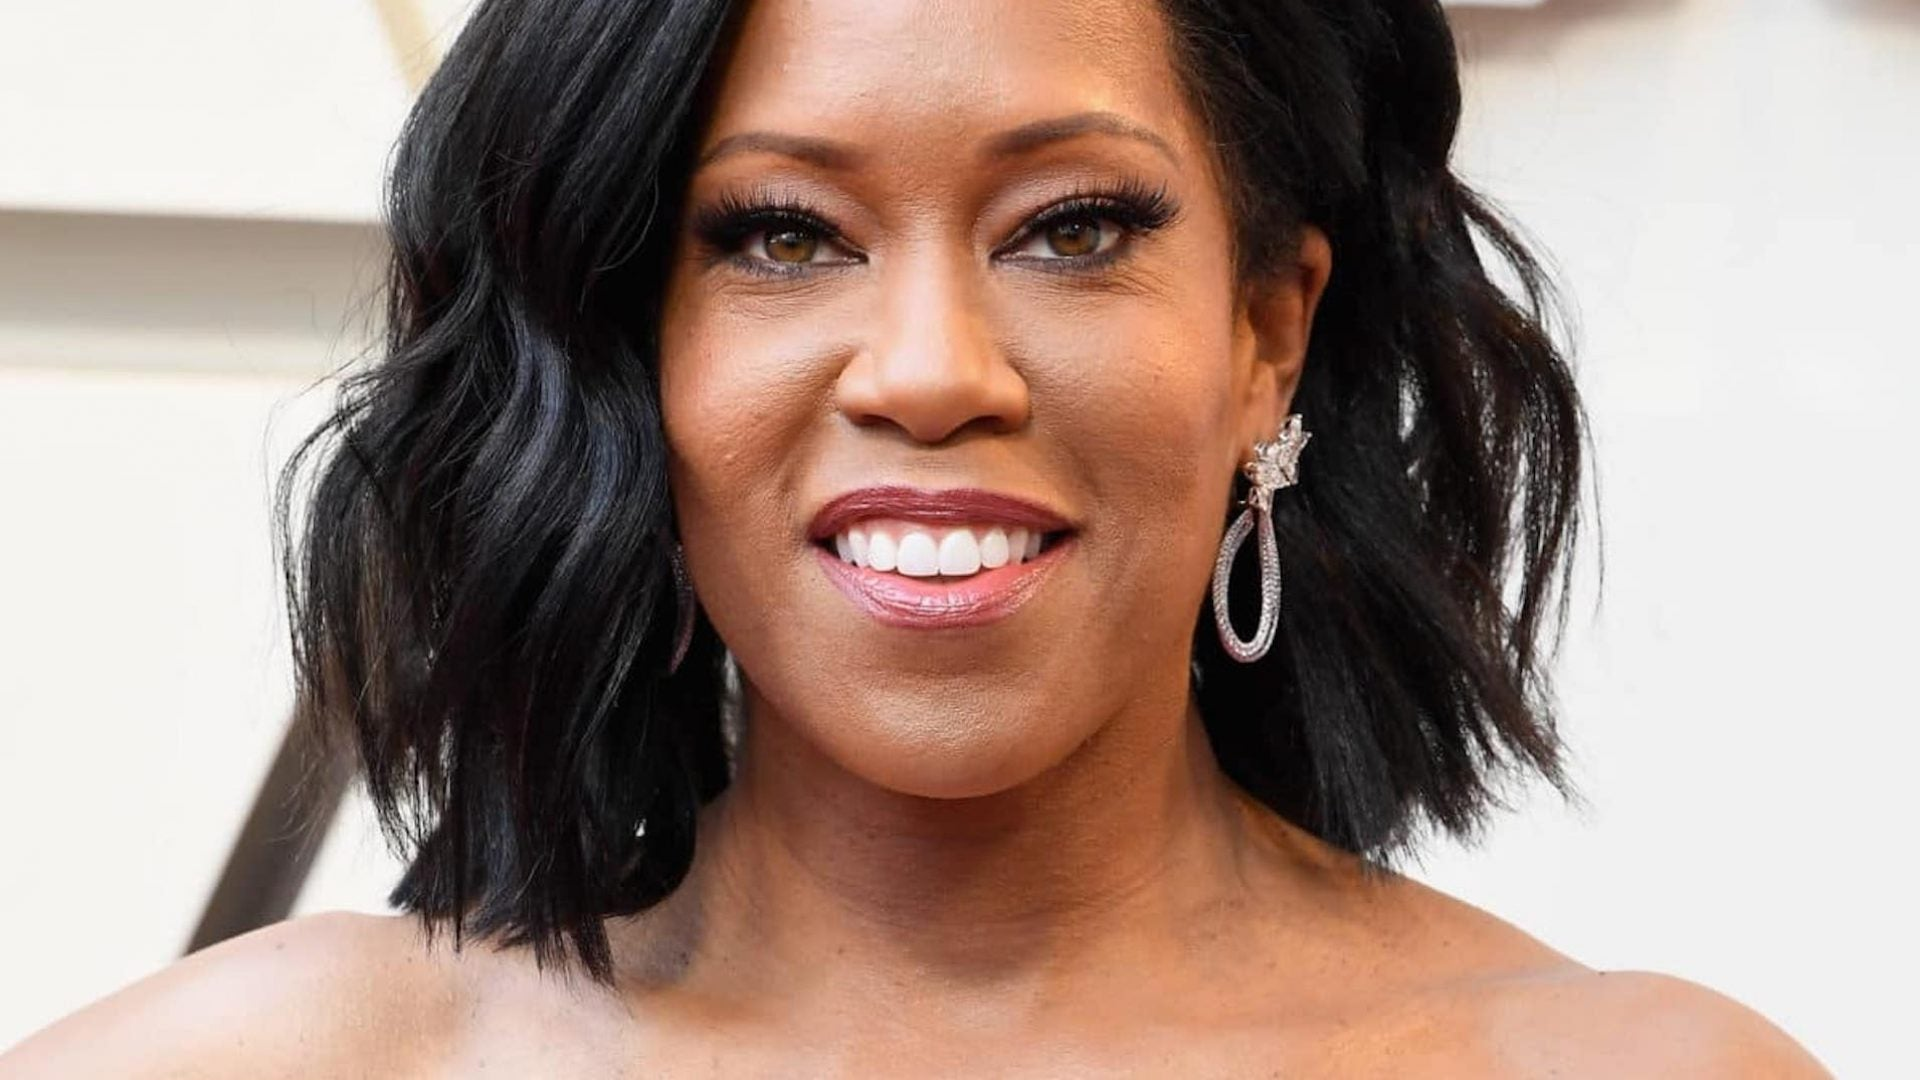 Regina King Makes Directorial Debut In 'One Night In Miami'